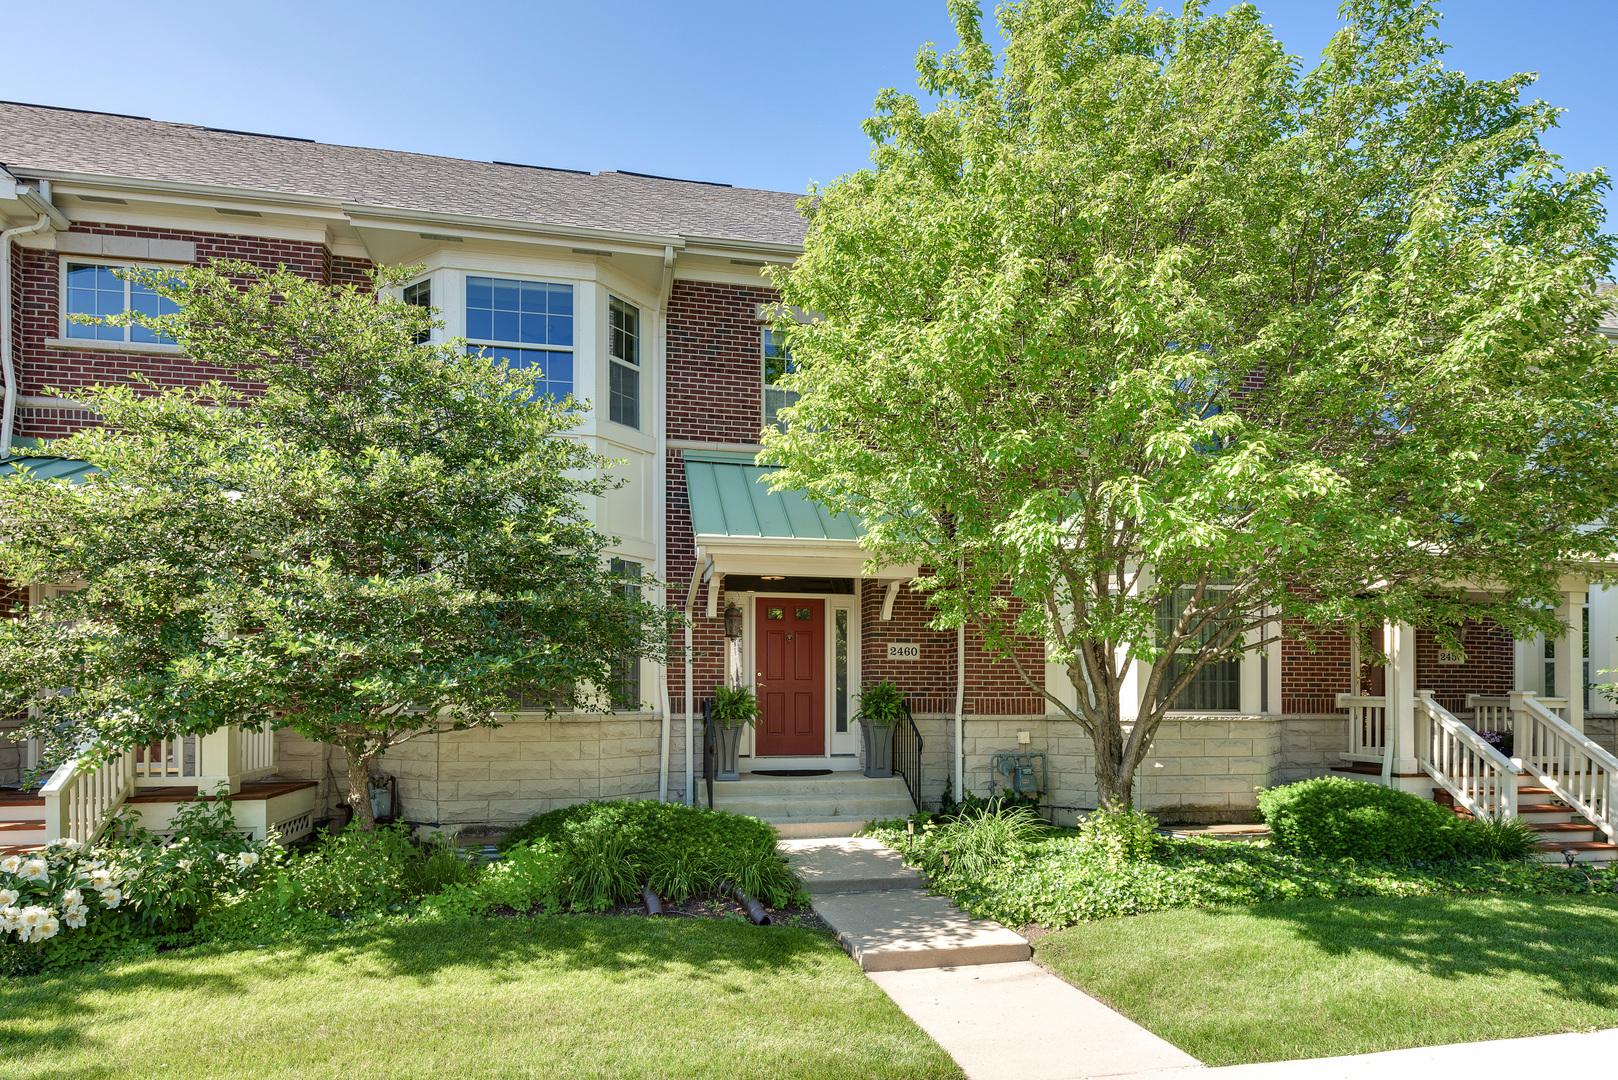 Glenview Single Family Home for Sale